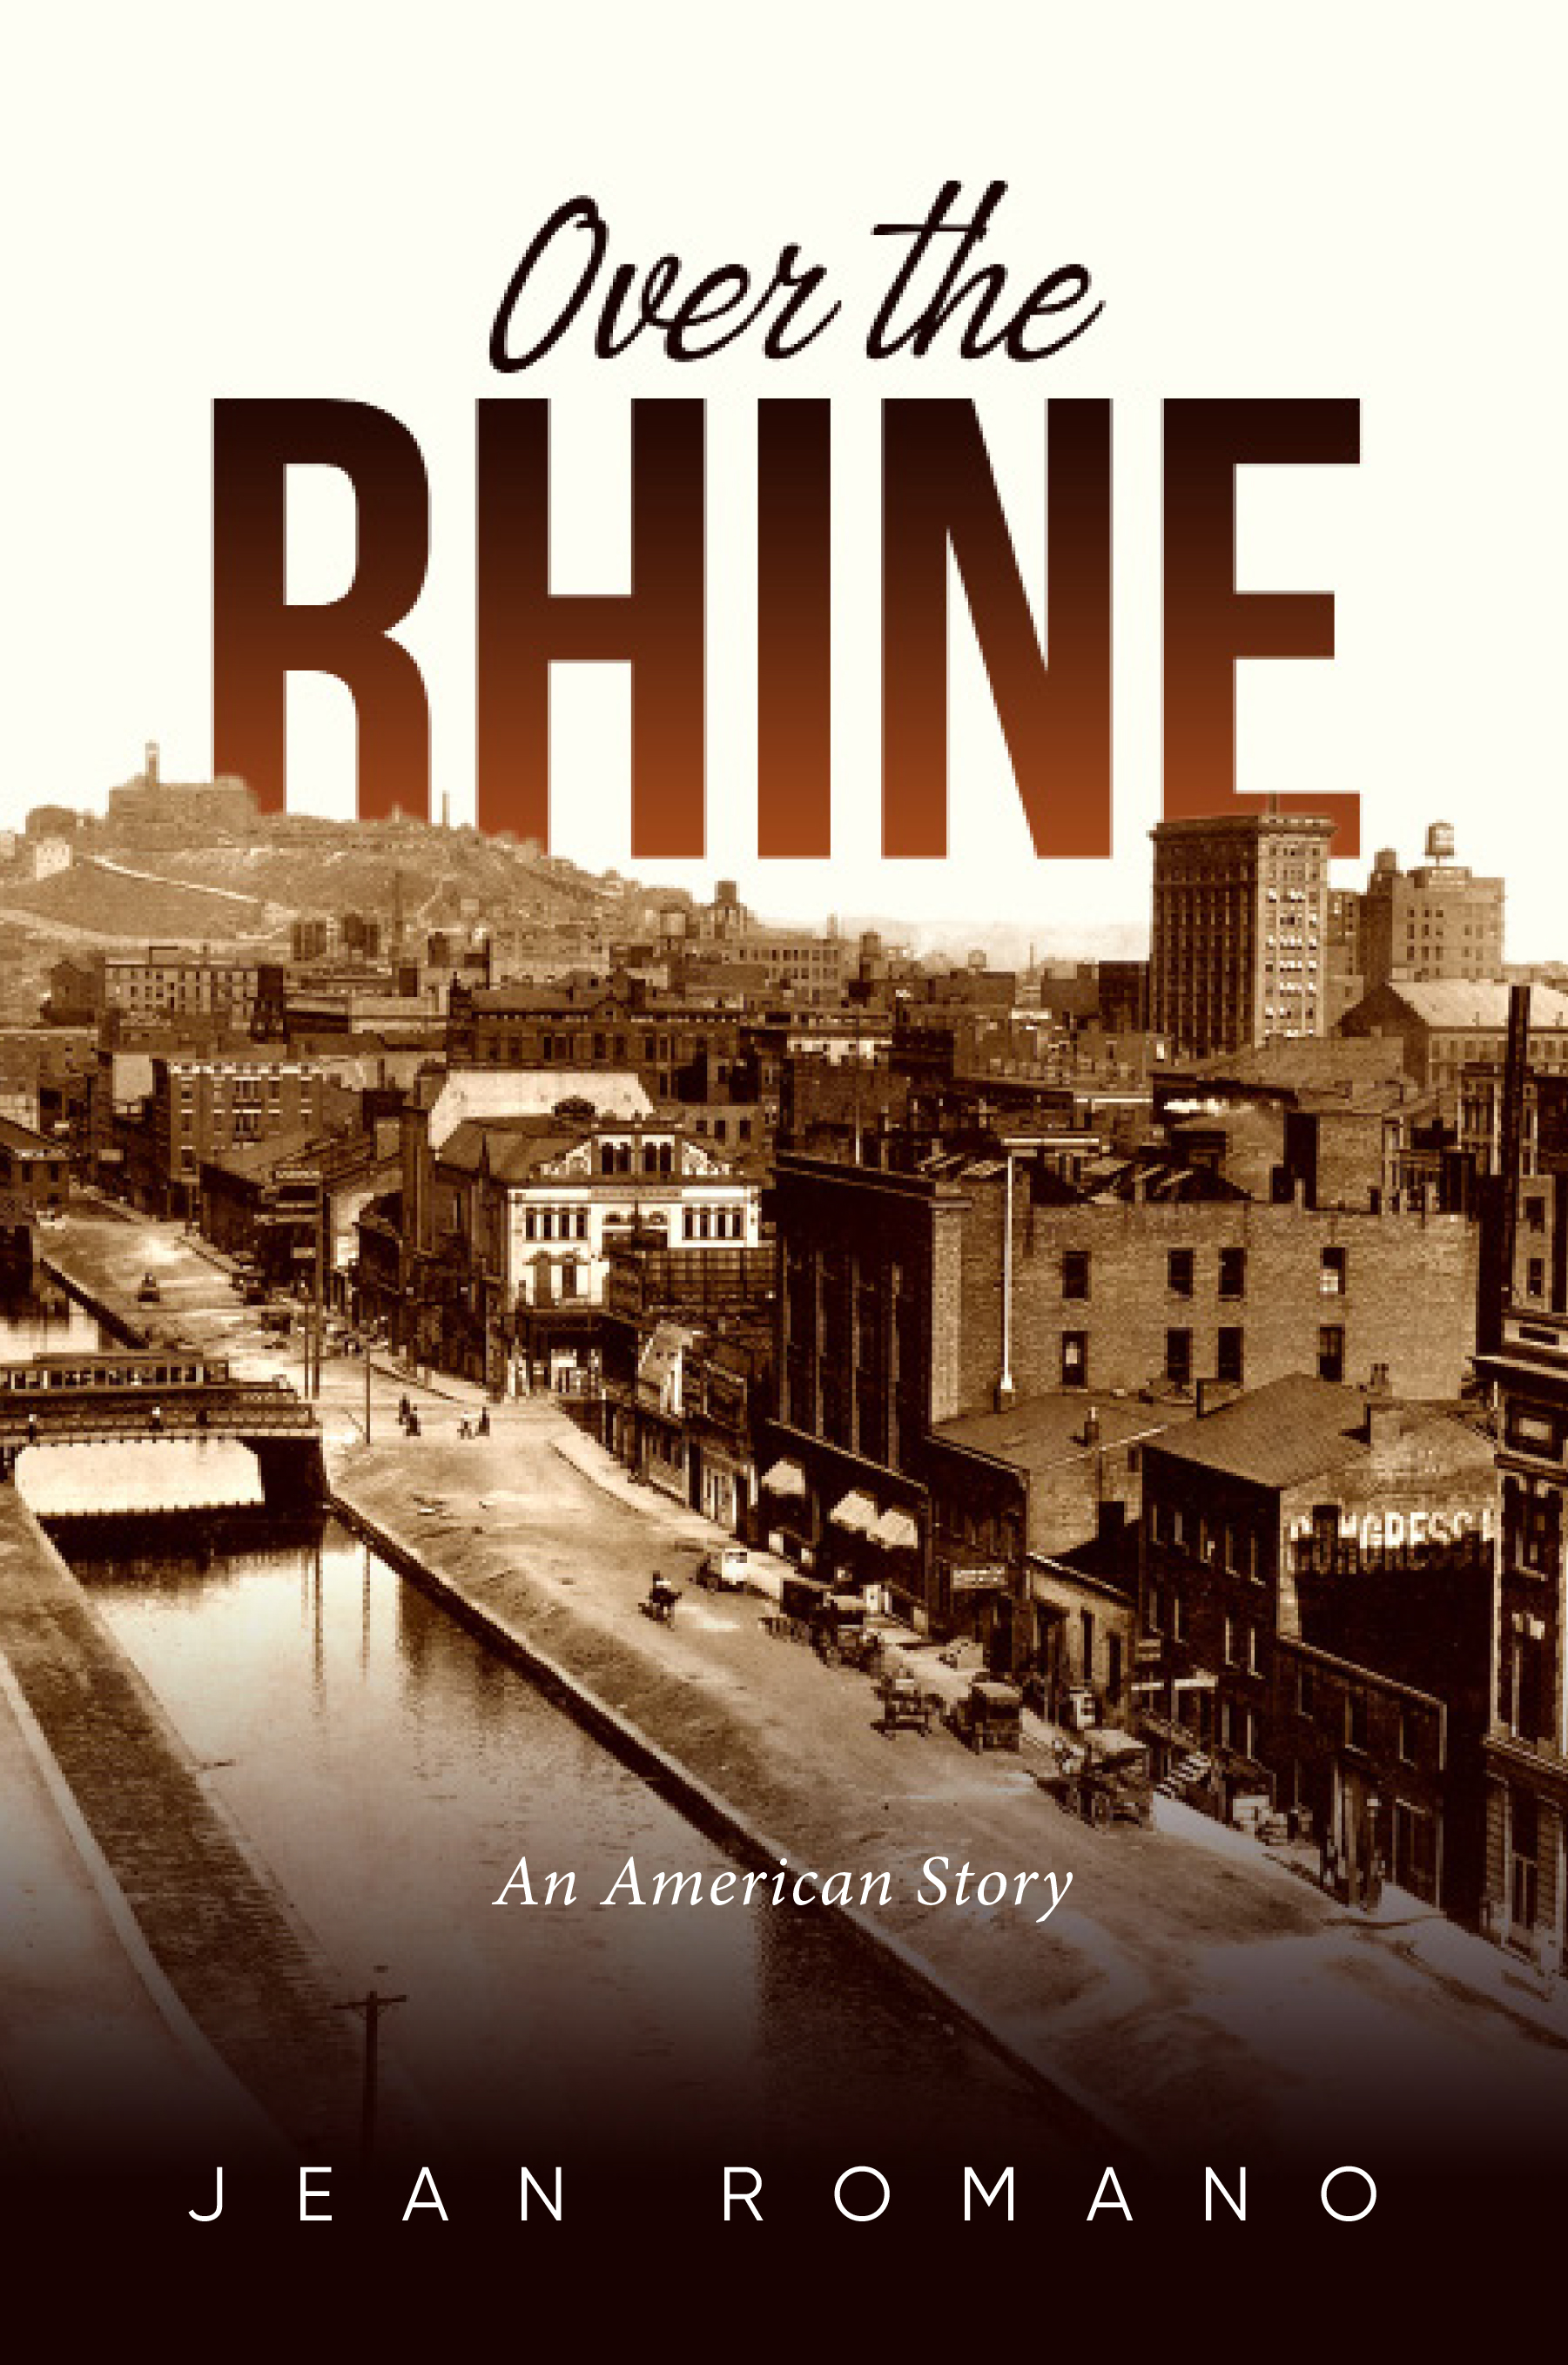 Life-changing stories from 'Over the Rhine' in a novel